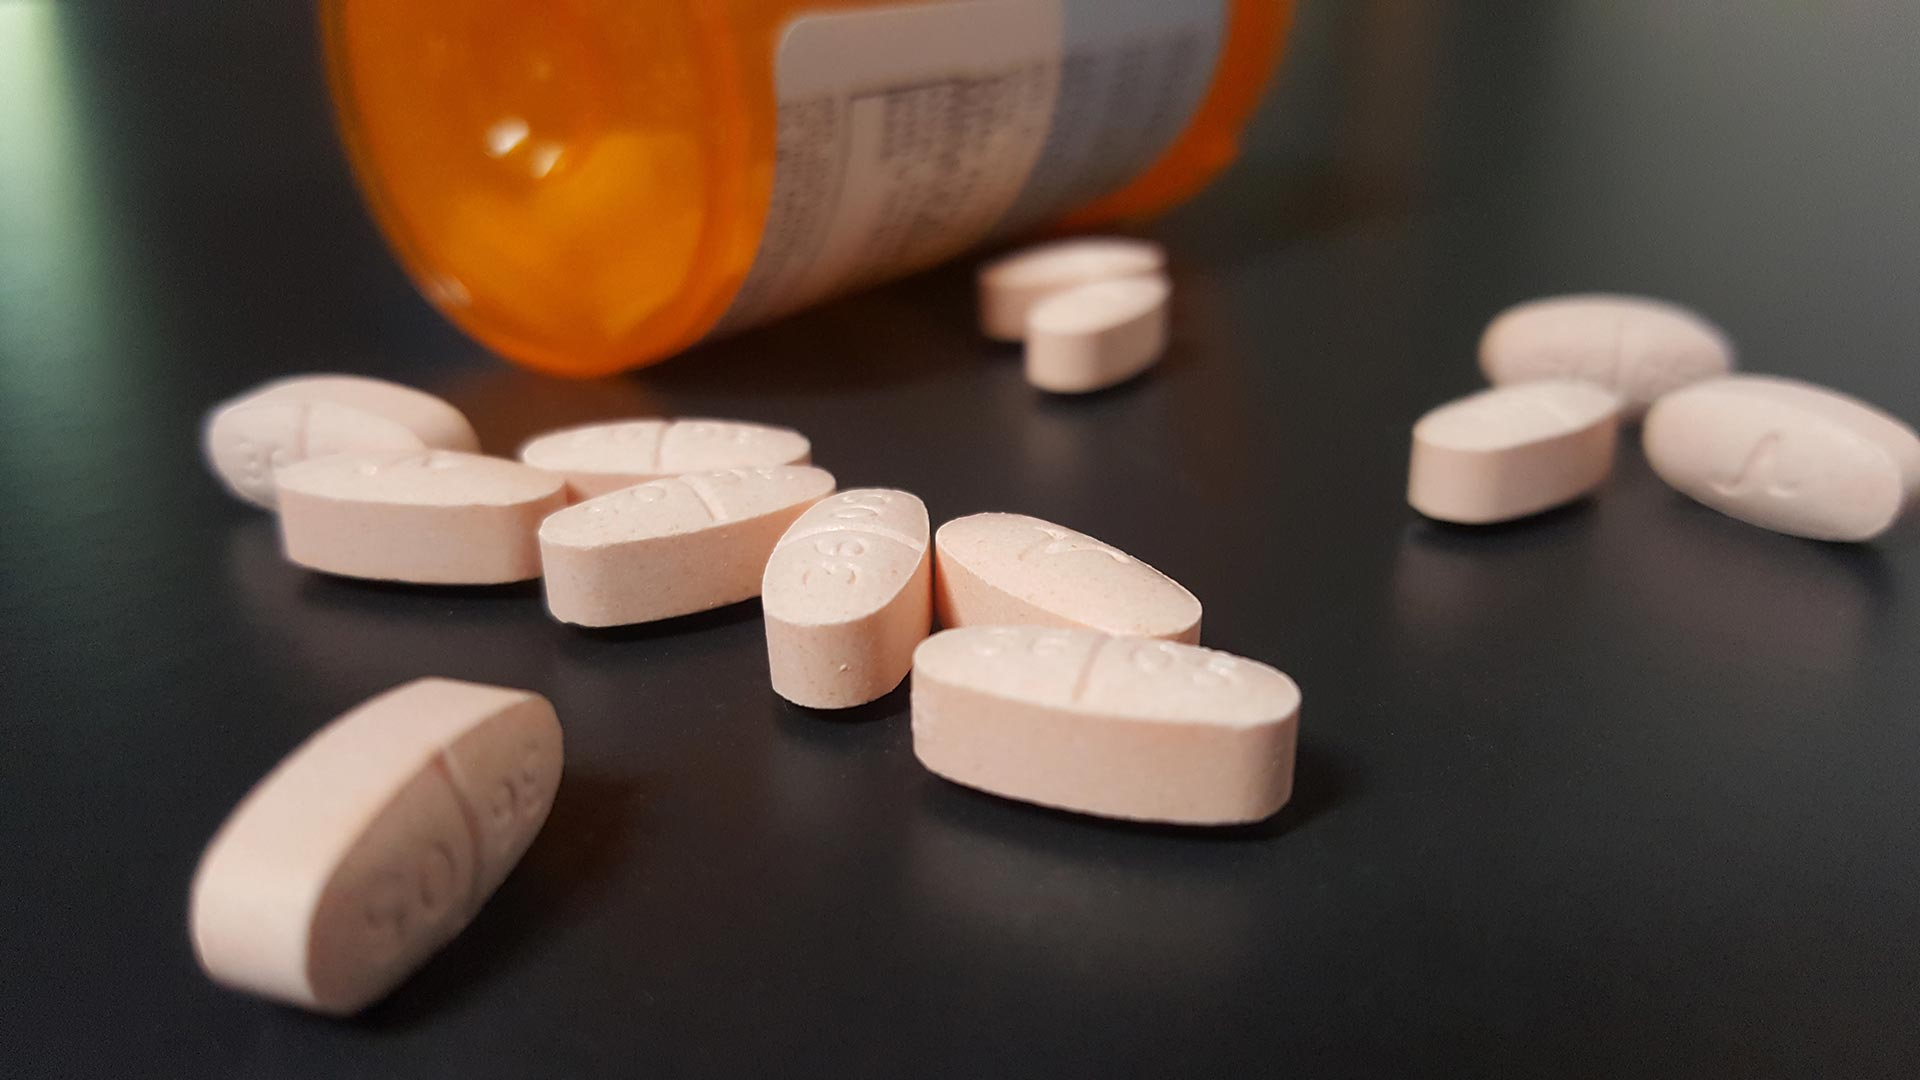 Opioid-related deaths are on the rise in Arizona.